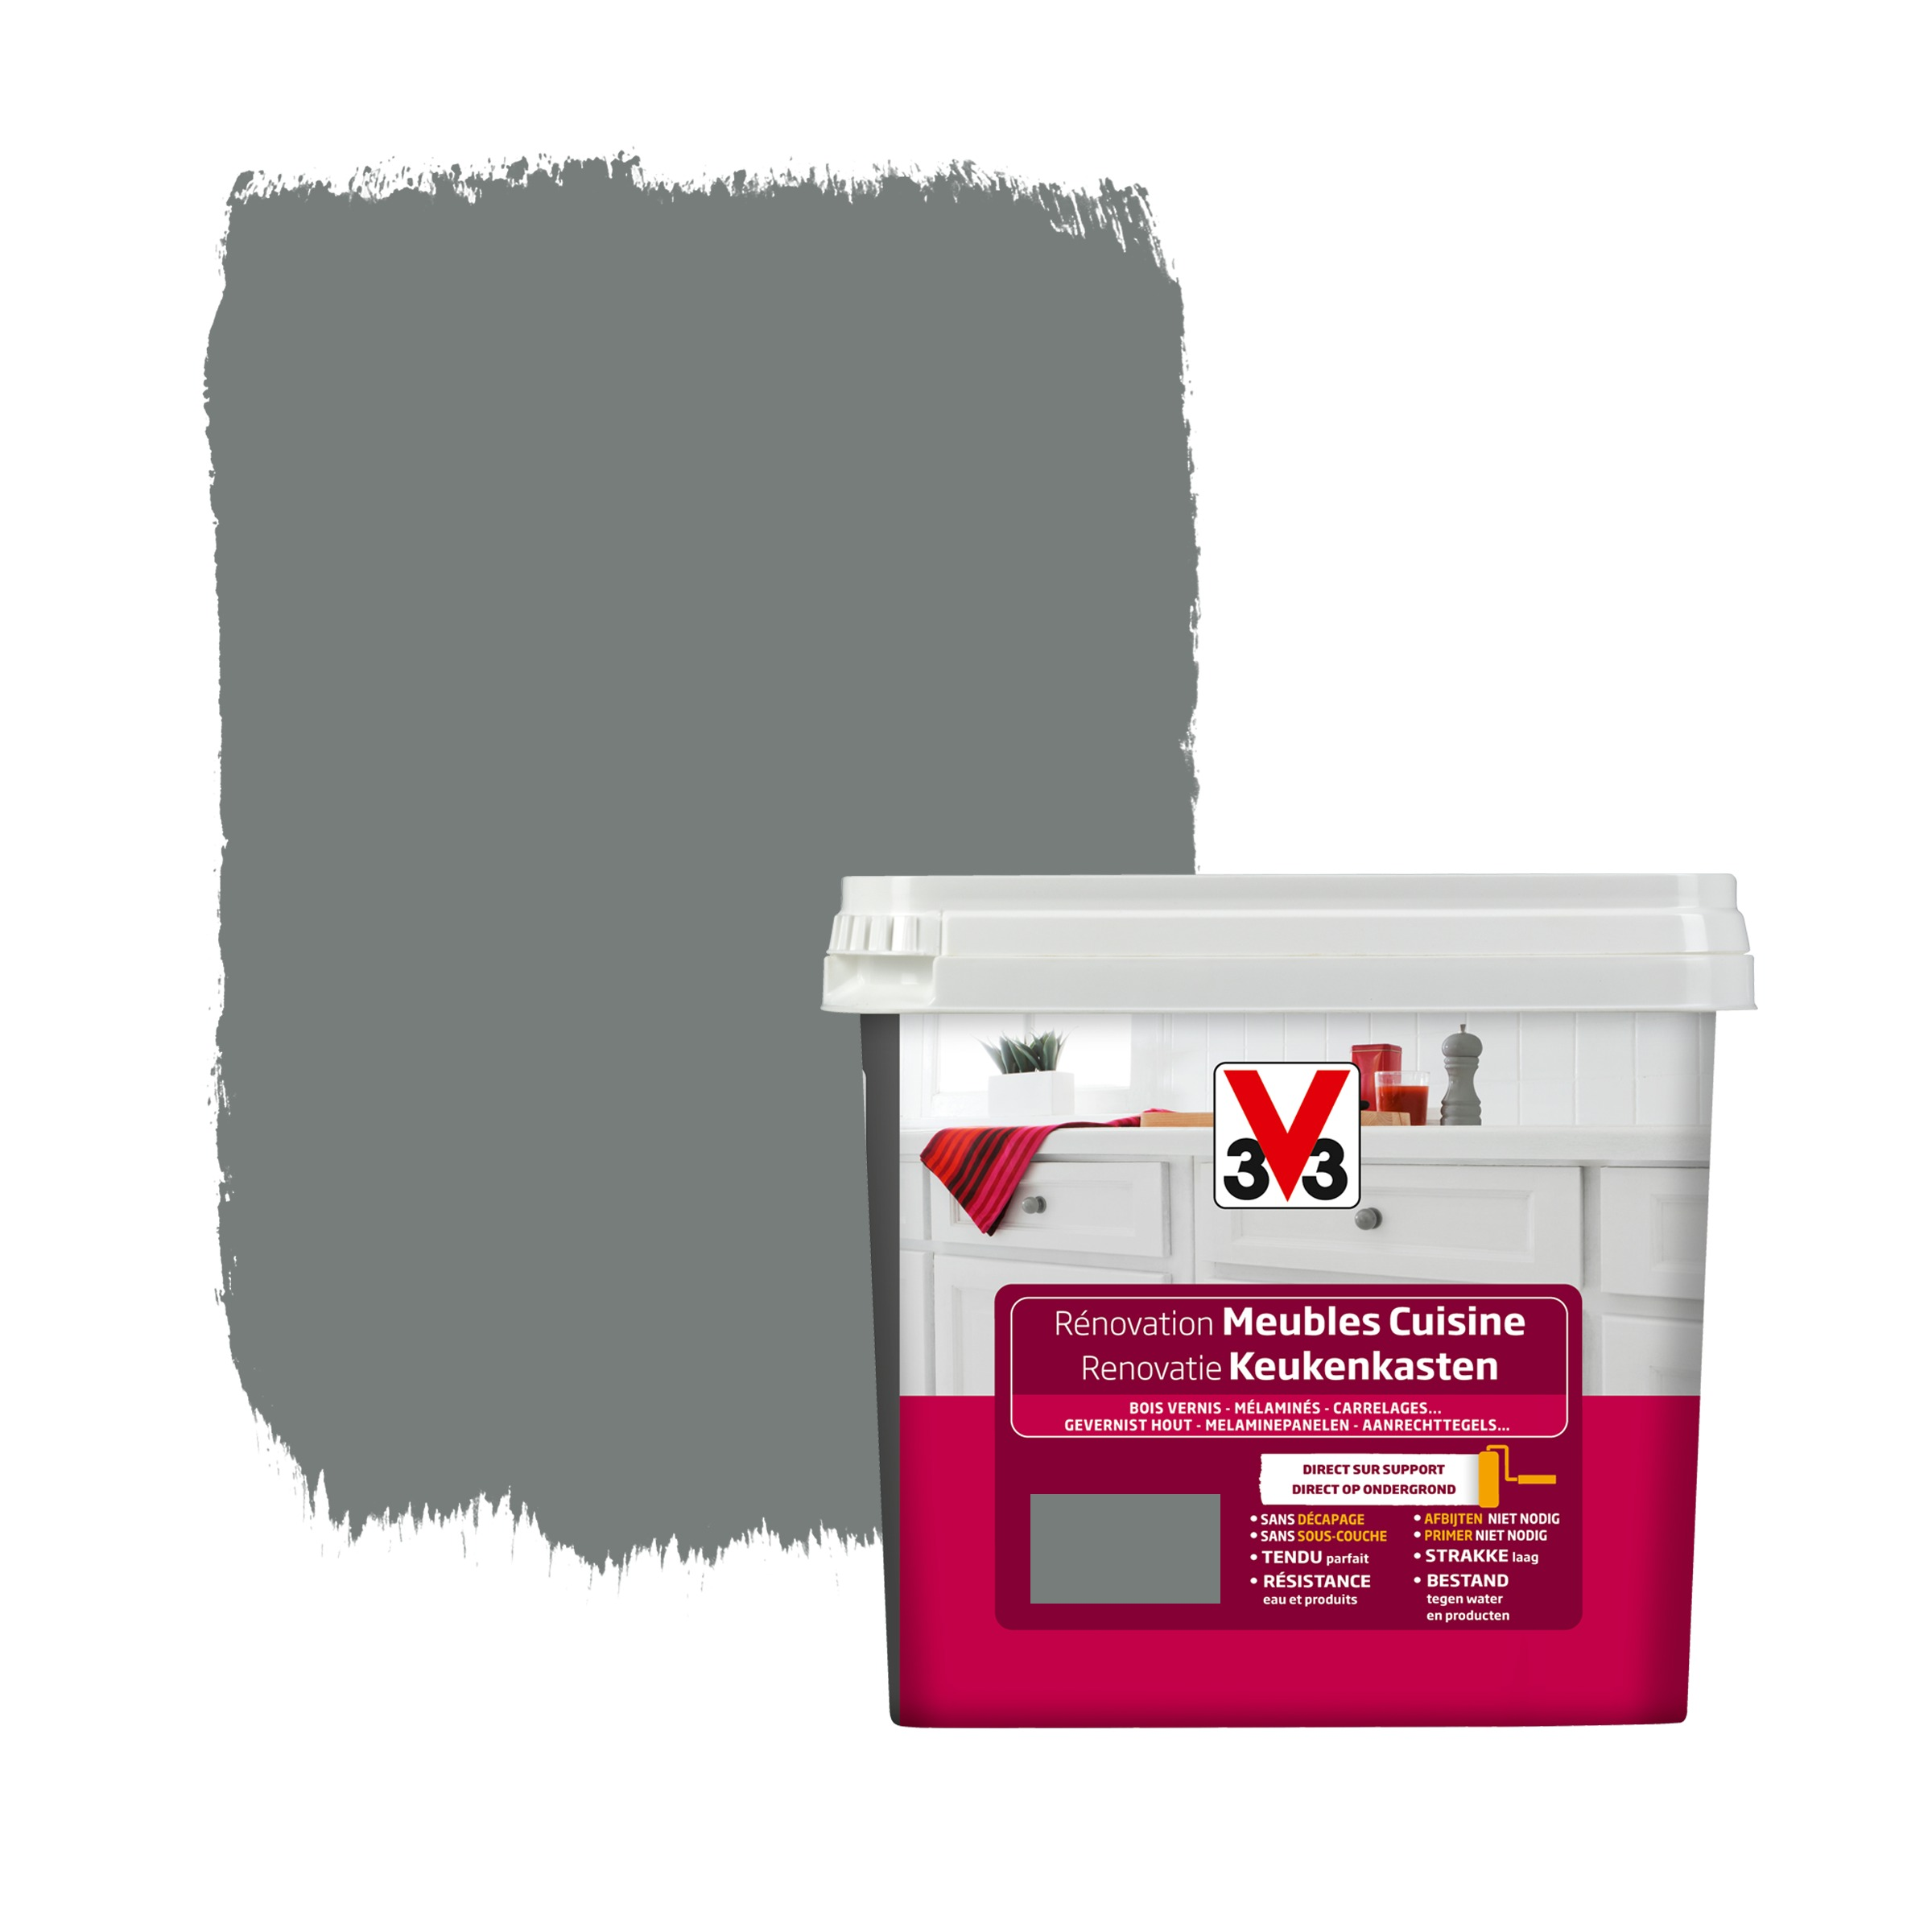 Peinture de r novation meubles cuisine v33 satin carbonate for Peinture renovation v